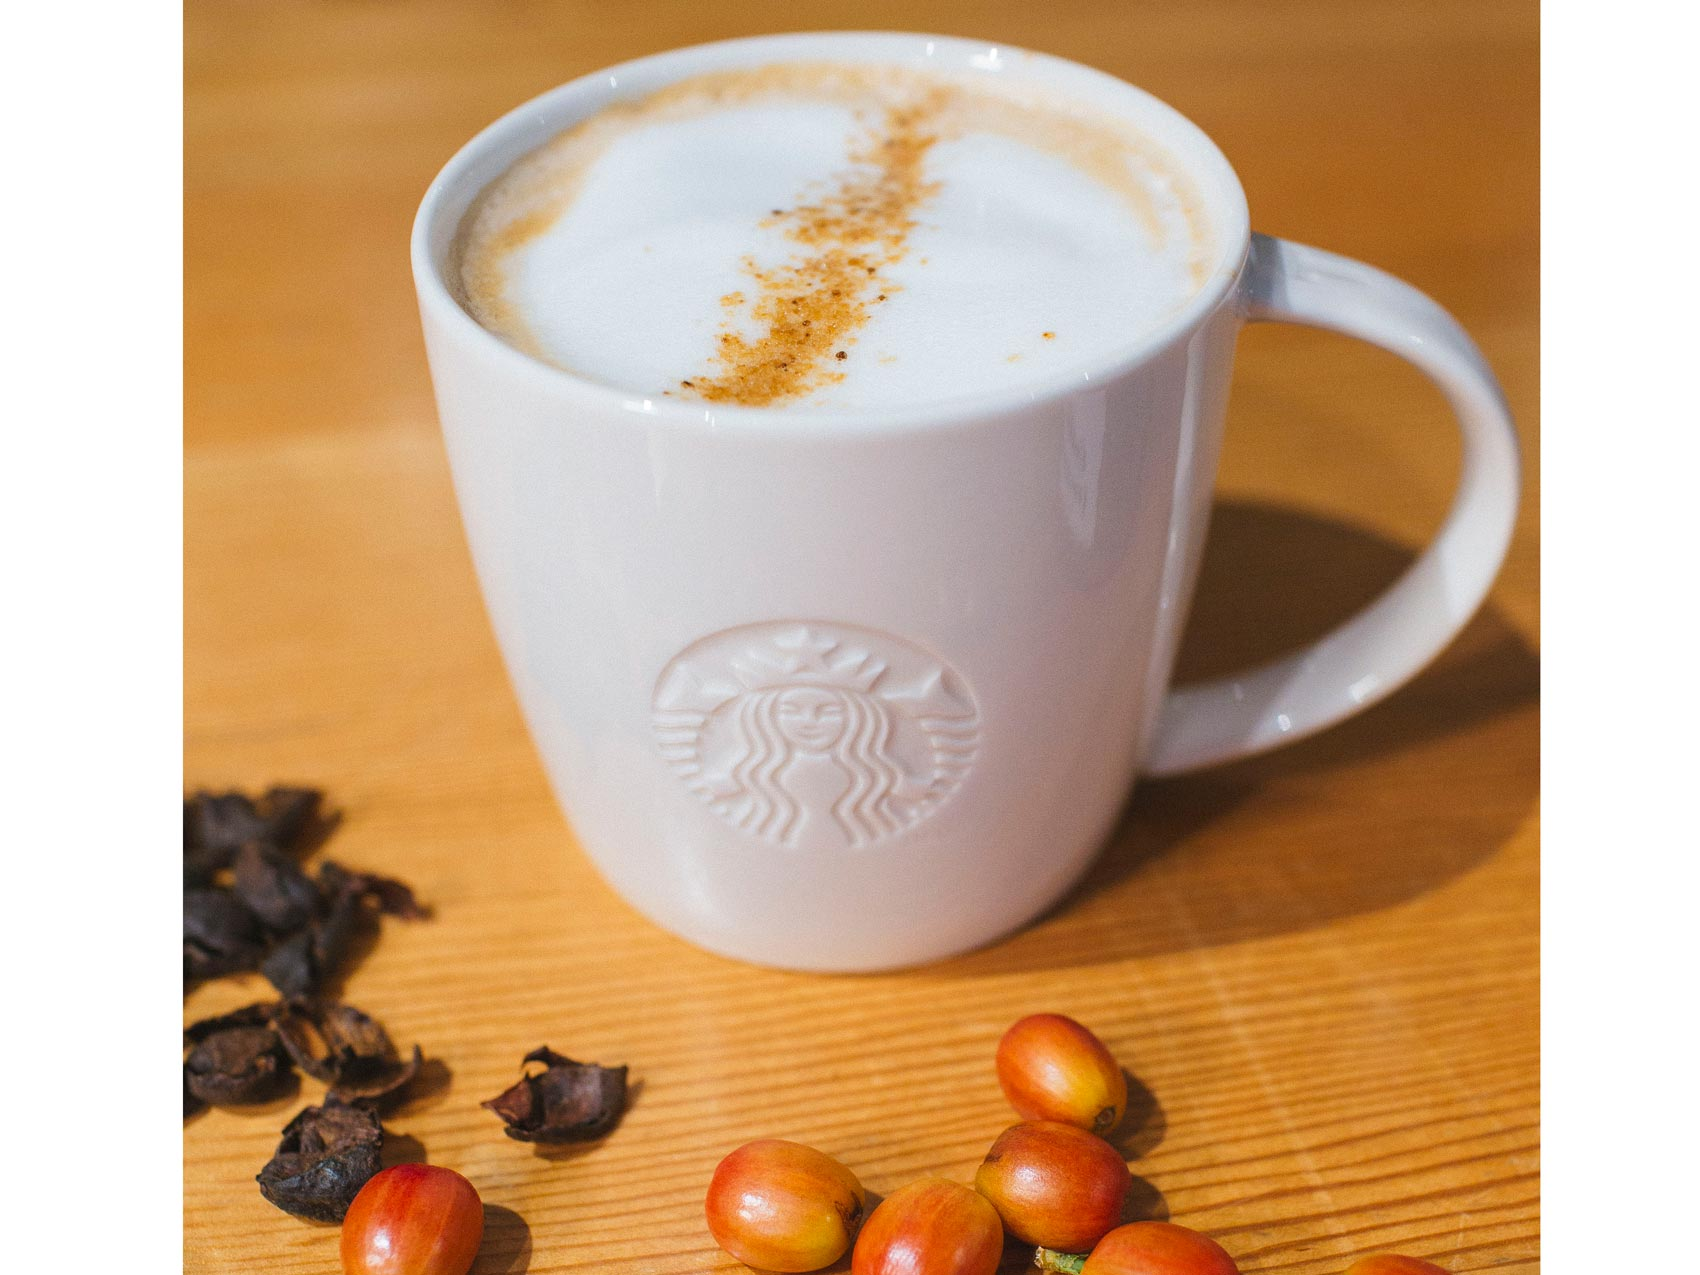 Starbucks Just Released New Food and Drink Items for an Exciting Start to 2017